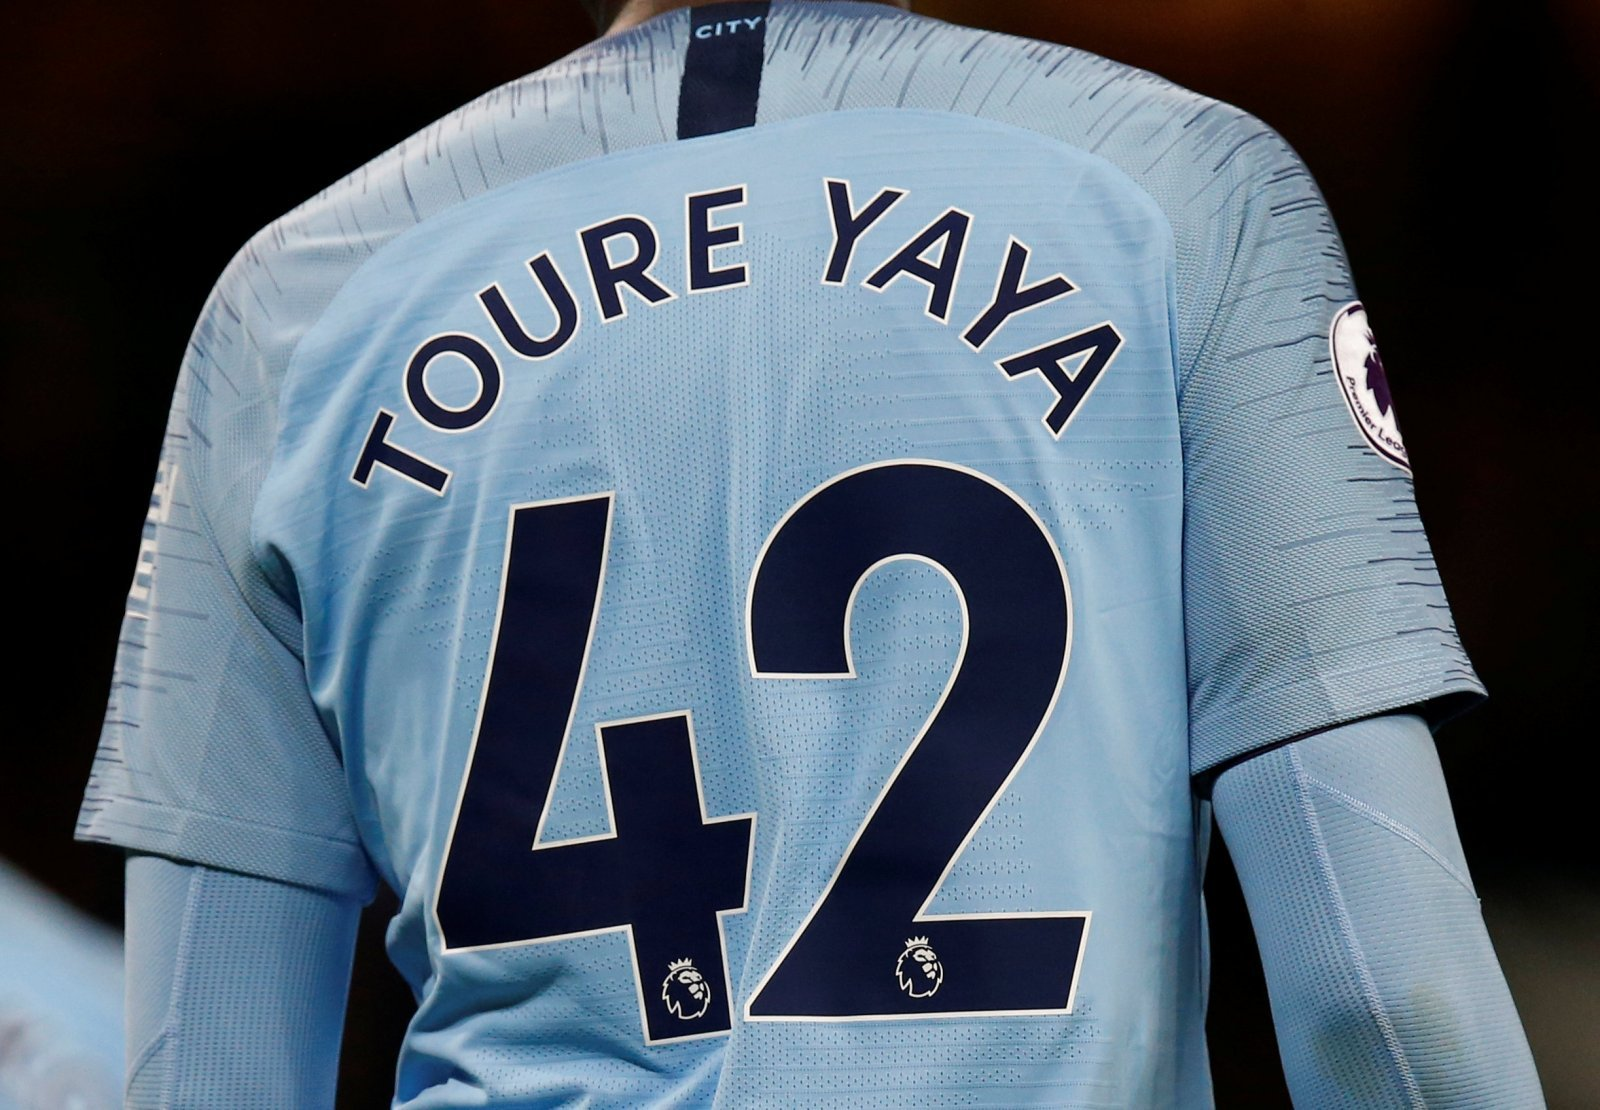 87% of polled Celtic fans want to see Yaya Toure sign this month